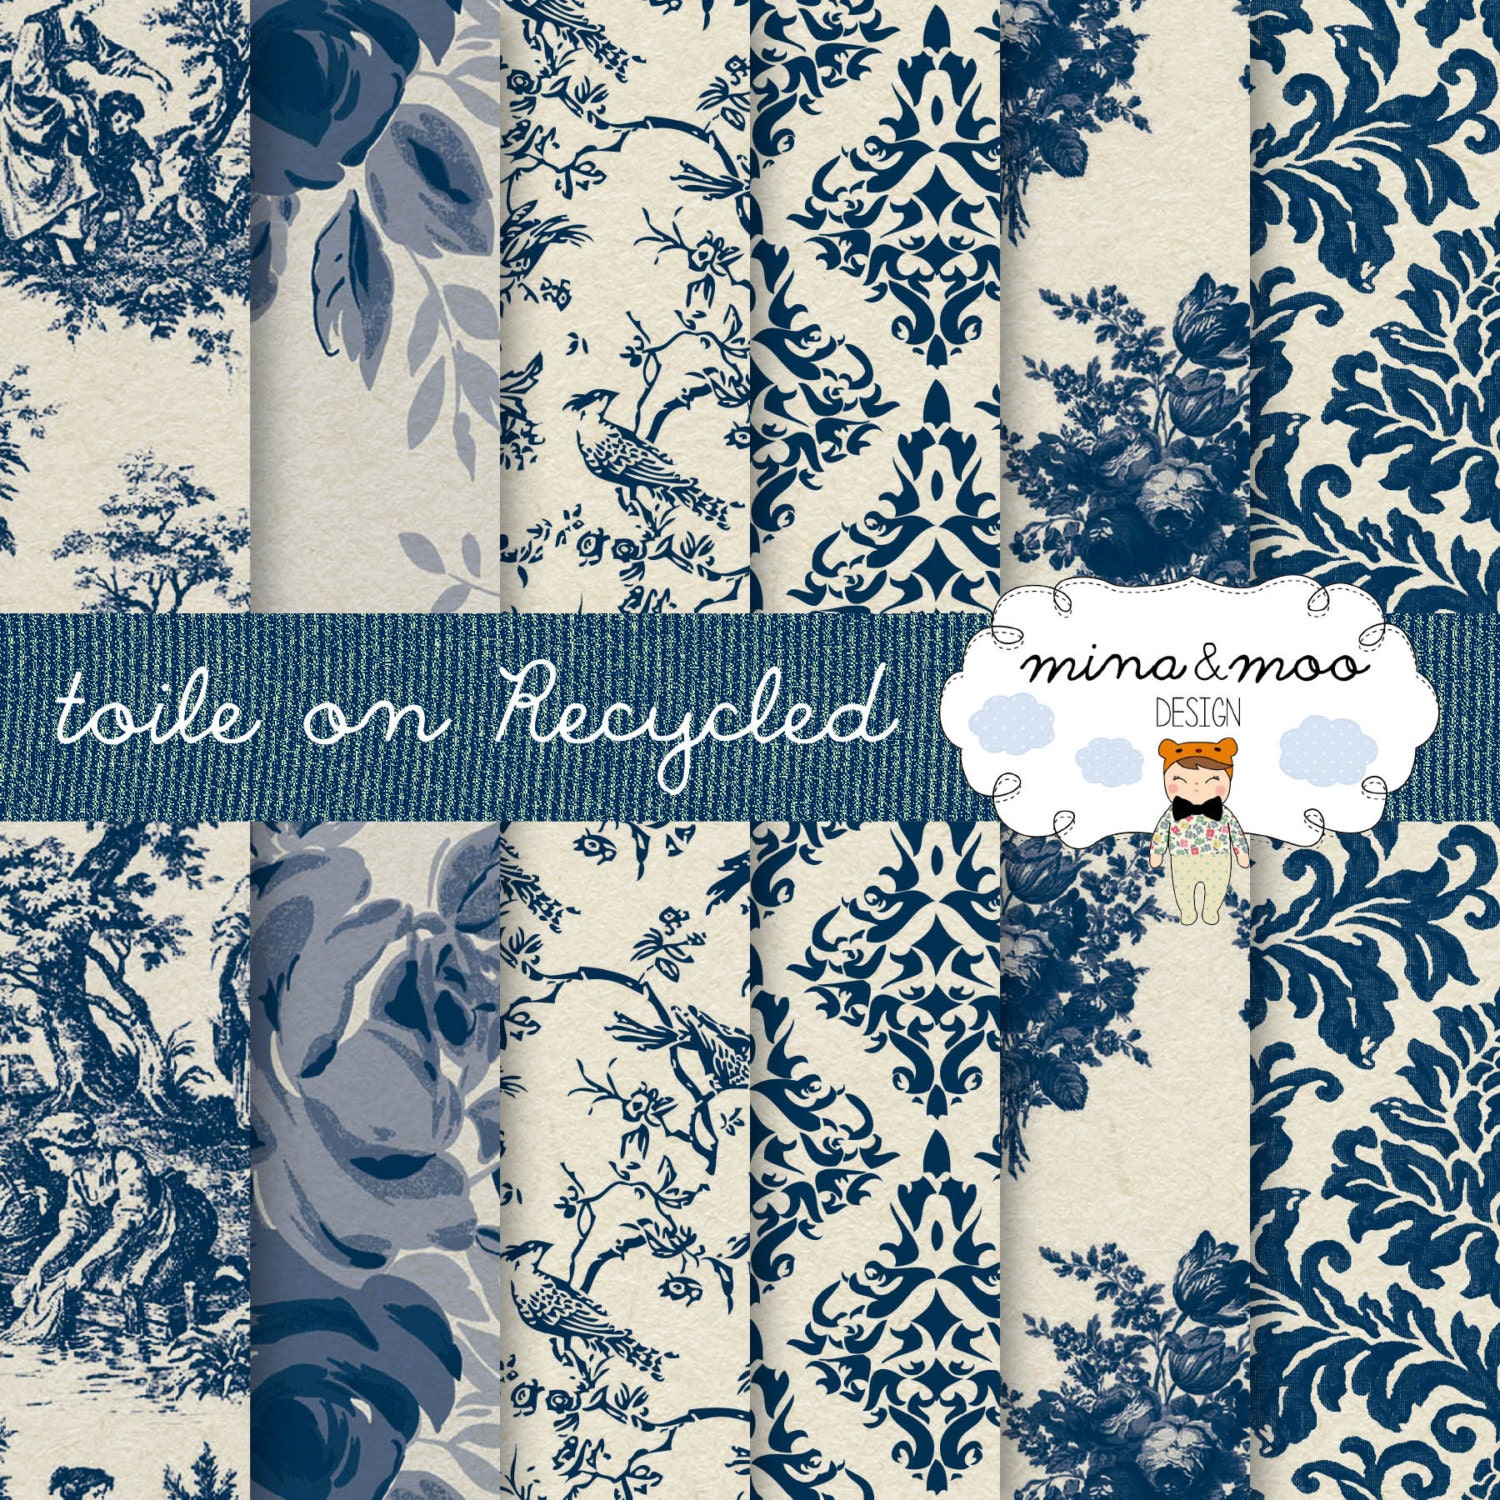 Toile de jouy classic blue on a recycled background french - Tapisserie toile de jouy ...